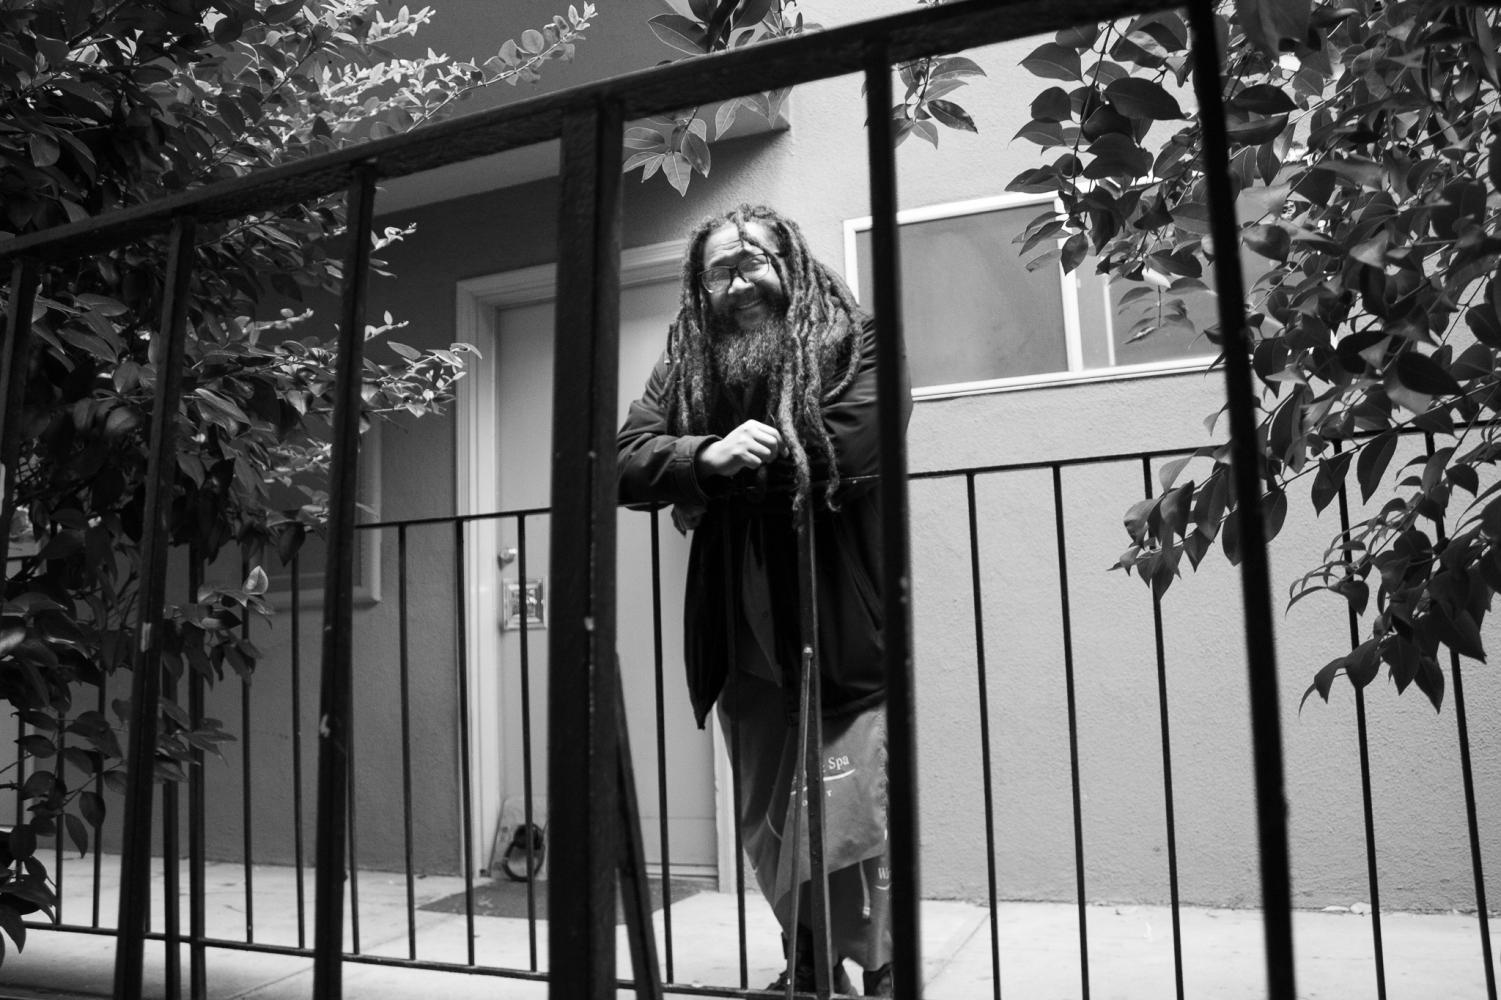 Charles Joseph stands outside of his second story apartment next to trees growing in between two apartment buildings Wednesday, March 10, 2021 in Sacramento, California. Joseph said that he enjoys how calm and peaceful his apartment is after years of living in prisons and detainment centers.